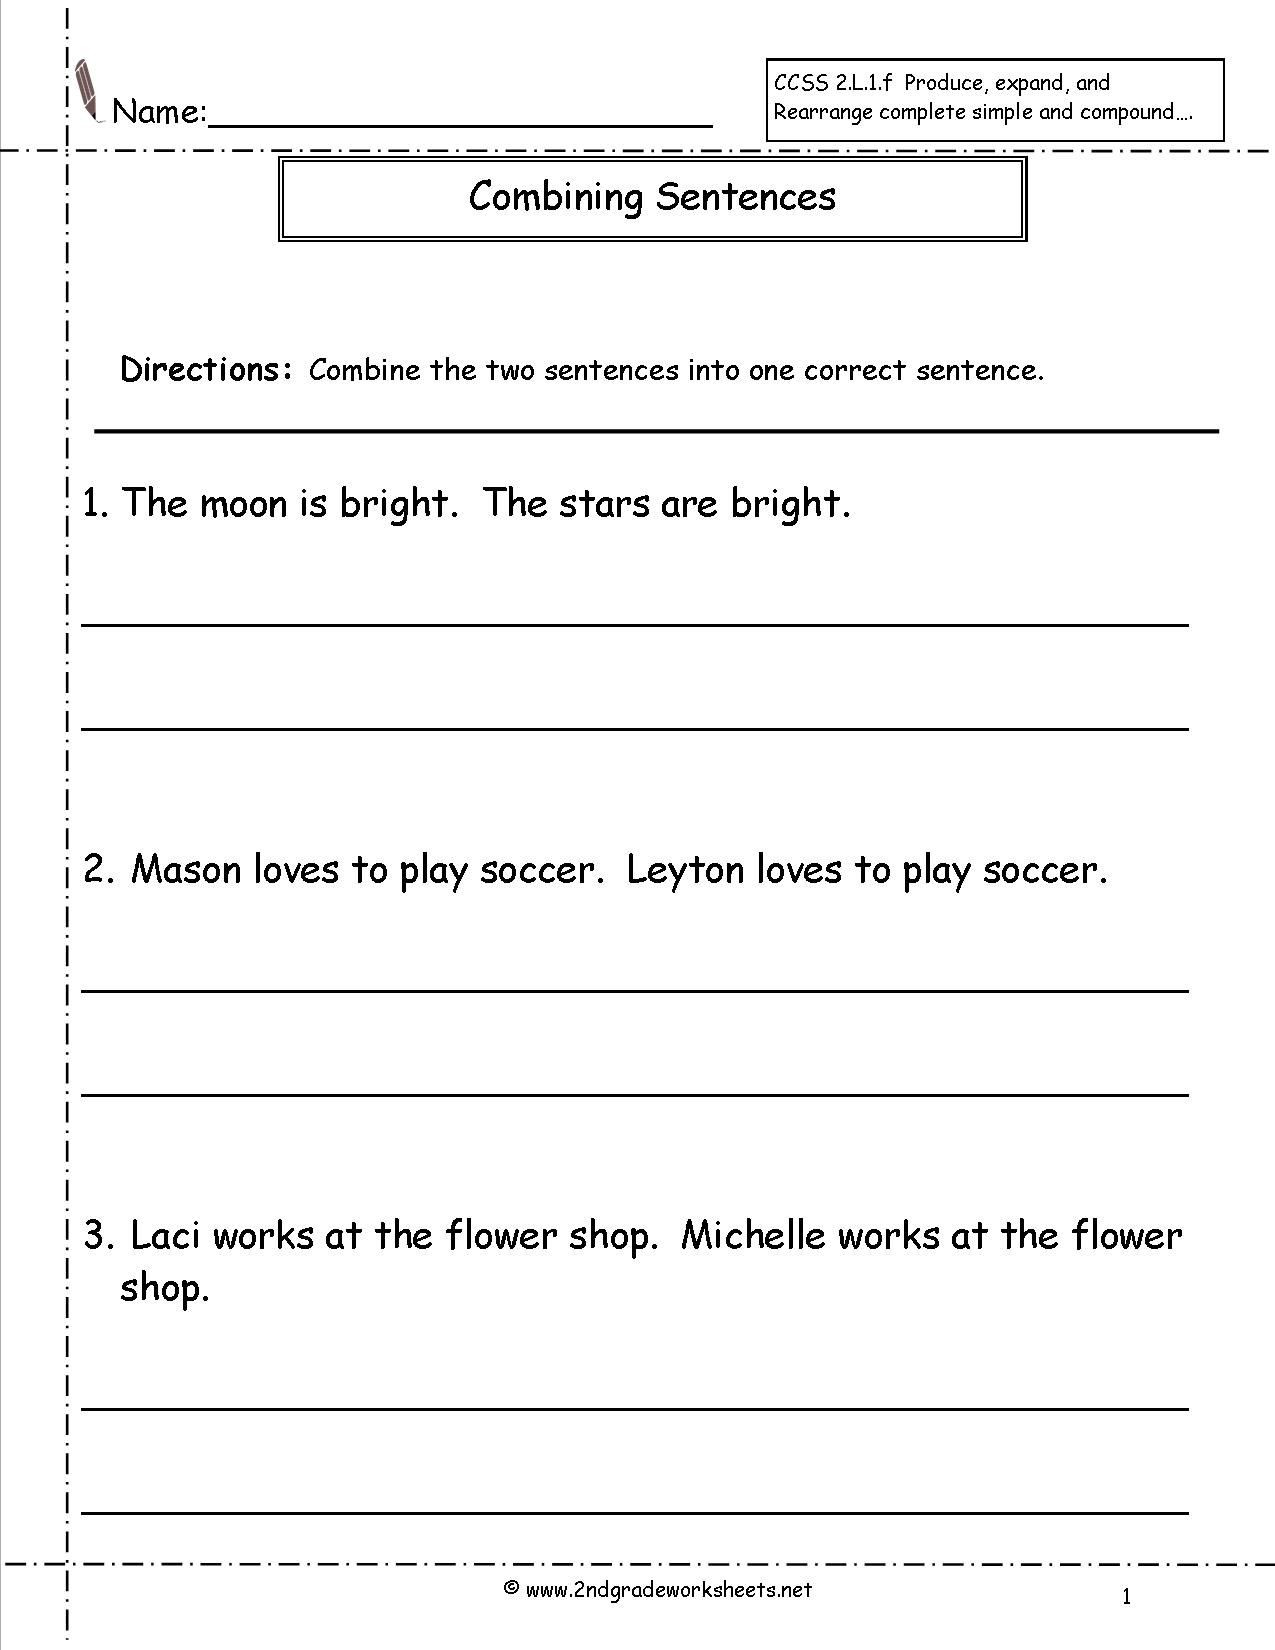 Combining Sentences Worksheets 5th Grade Bining Sentences Worksheet